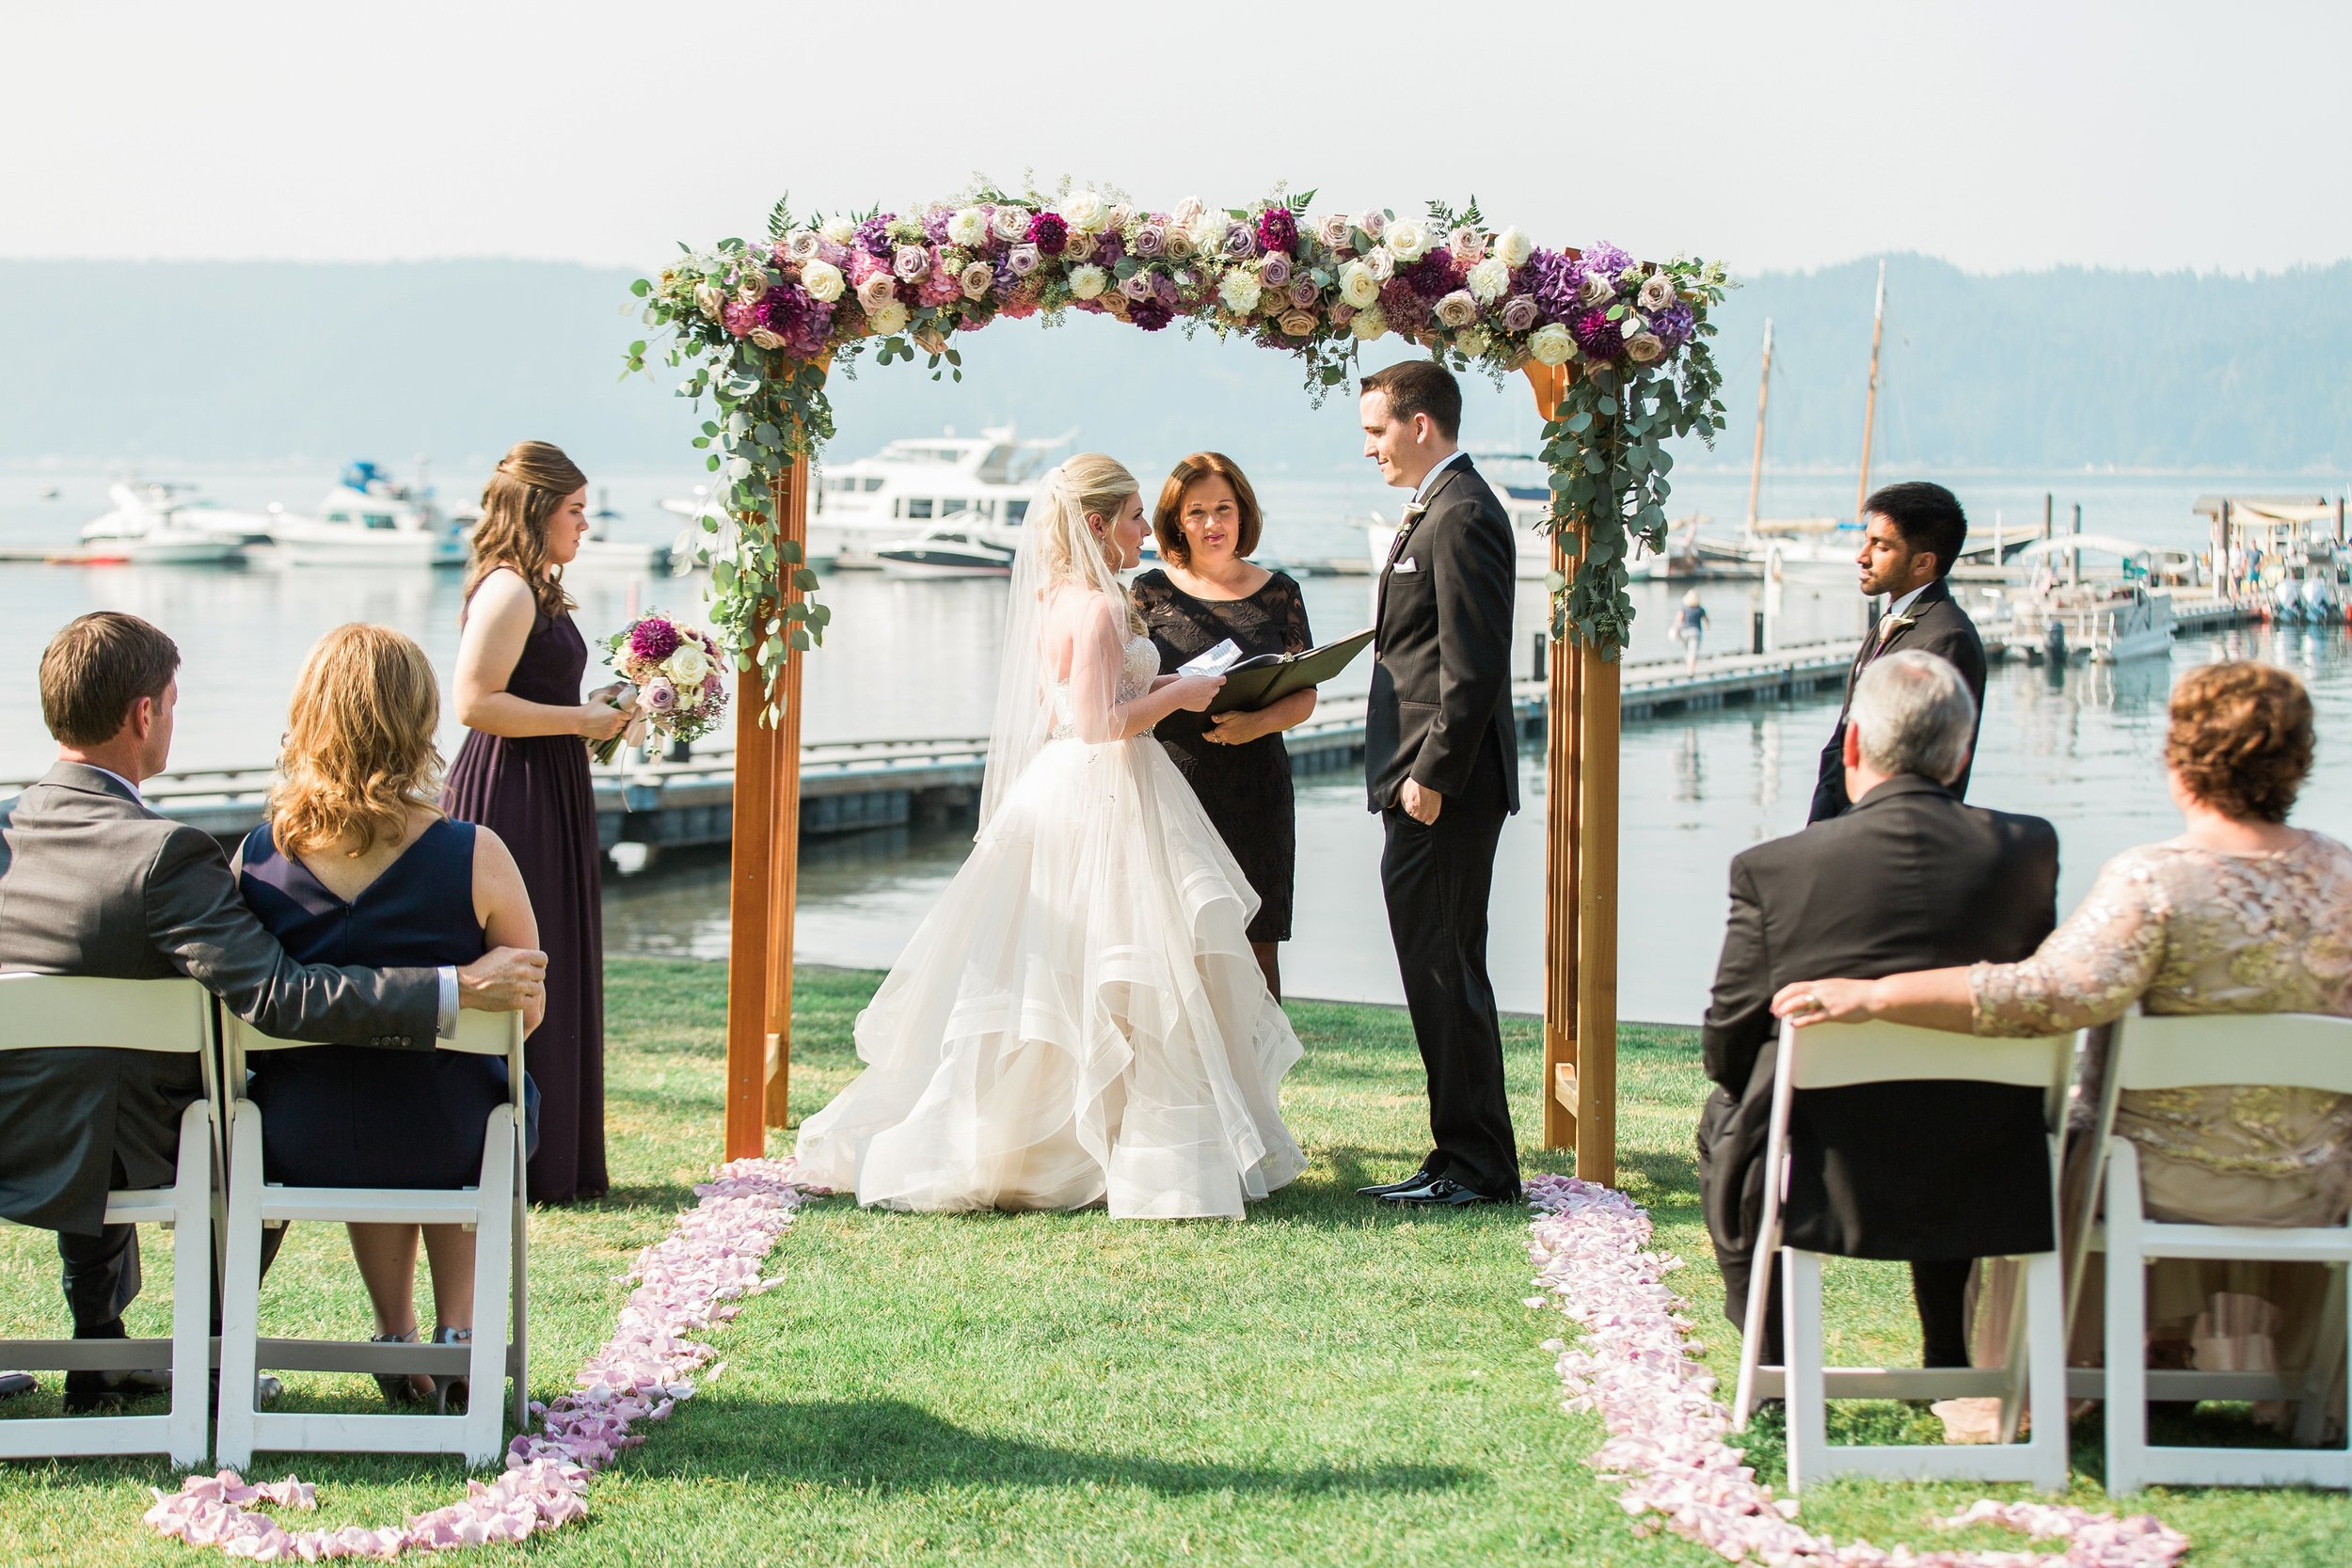 small intimate backyard wedding at alderbrook resort and spa by seattle photographer janelle elaine photography.jpg